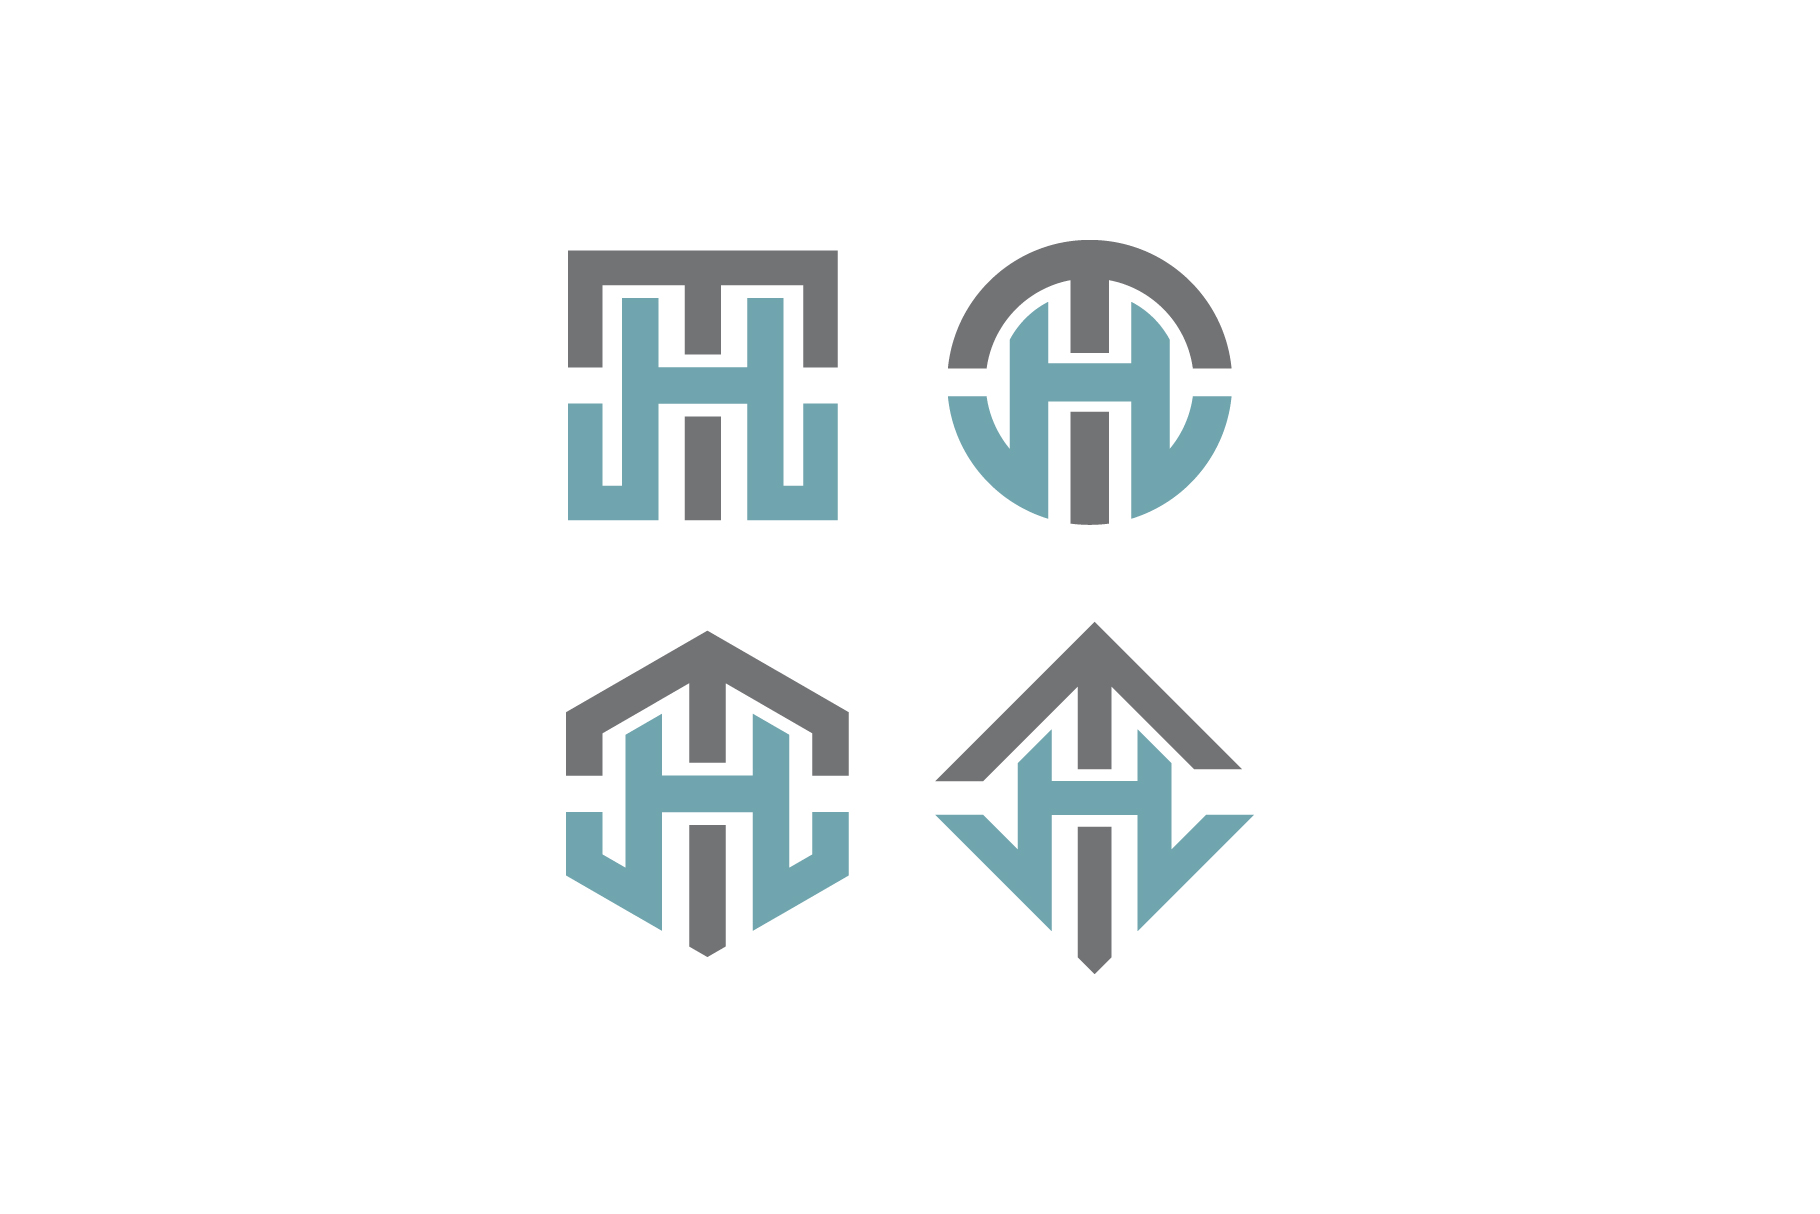 TH/HT initial logo example image 1